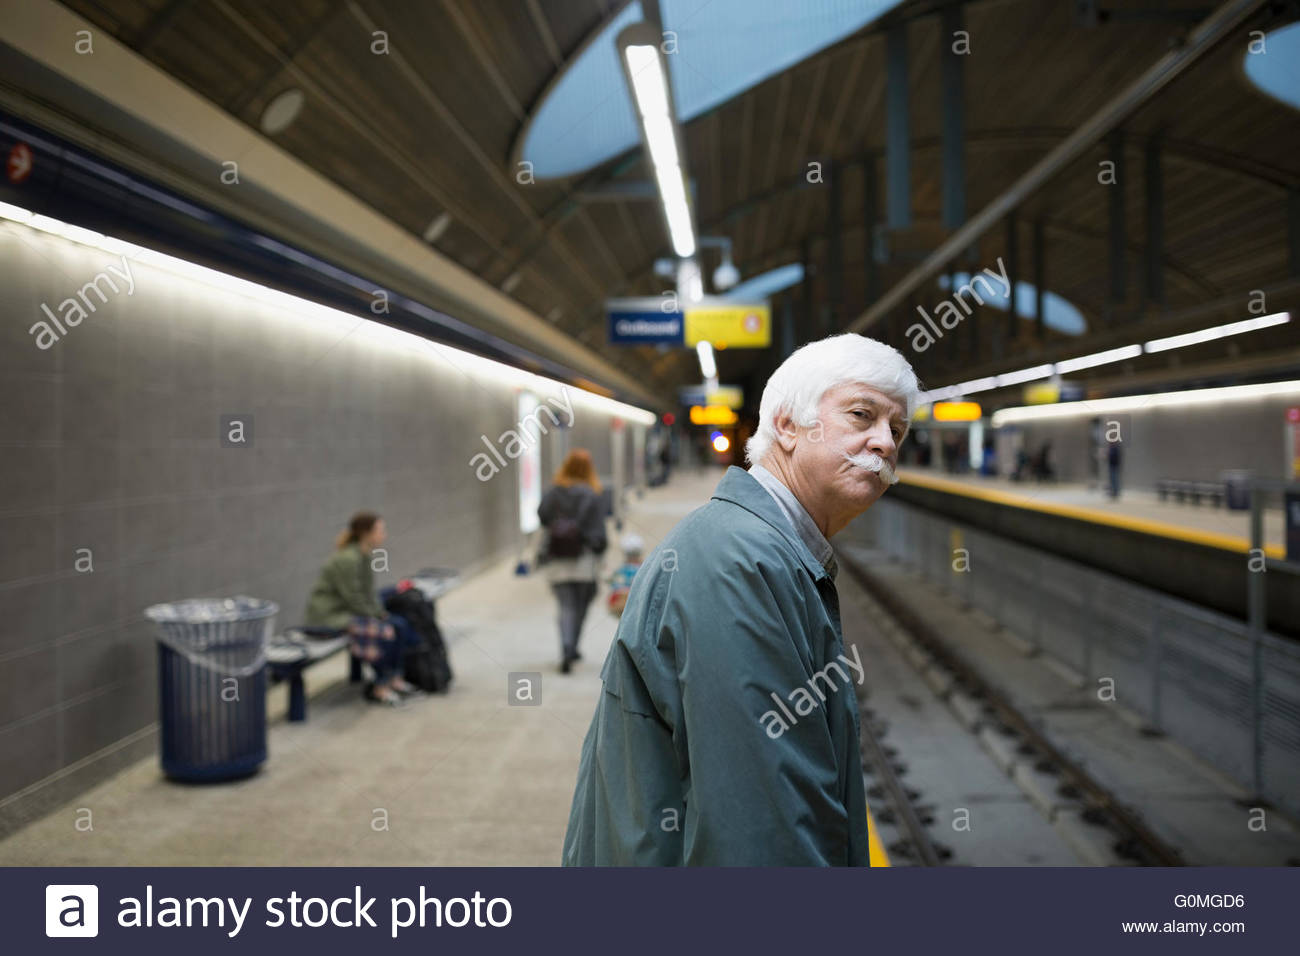 Senior man waiting on subway station platform - Stock Image